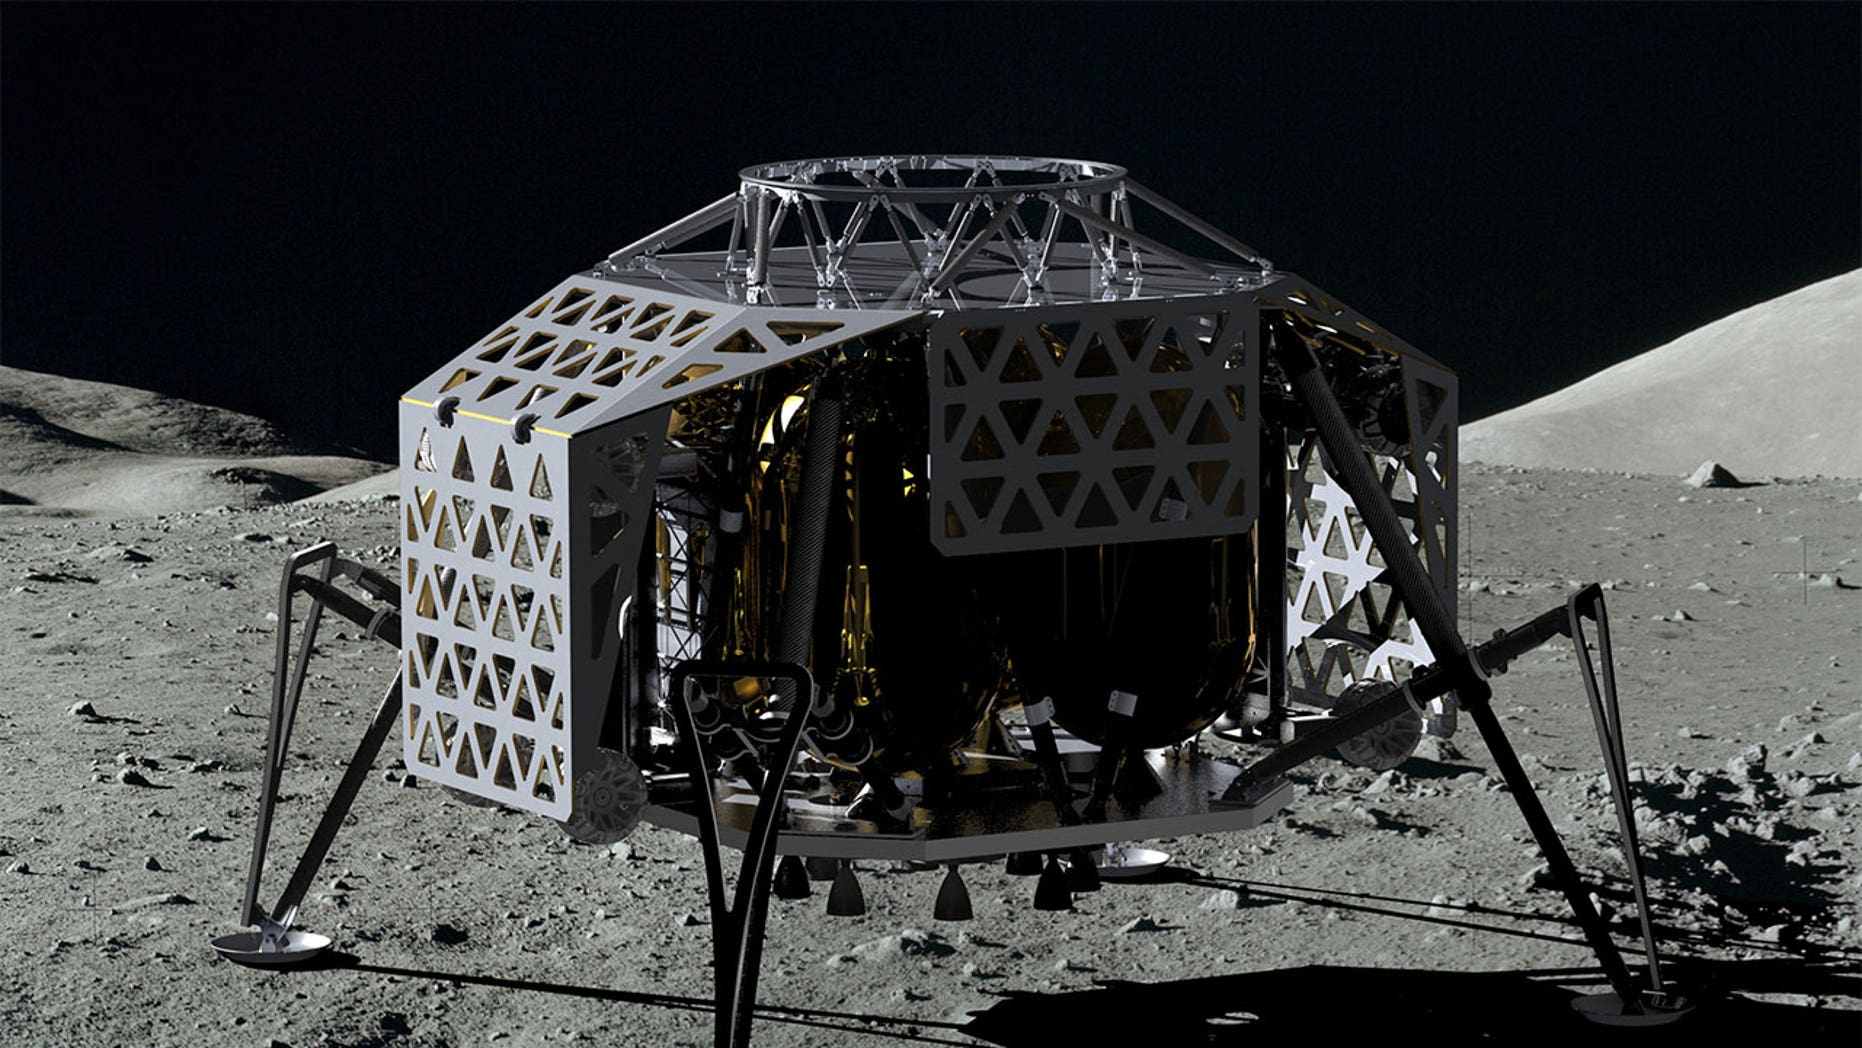 PTScientists' Autonomous Landing and Navigation Module, or ALINA, lunar lander.